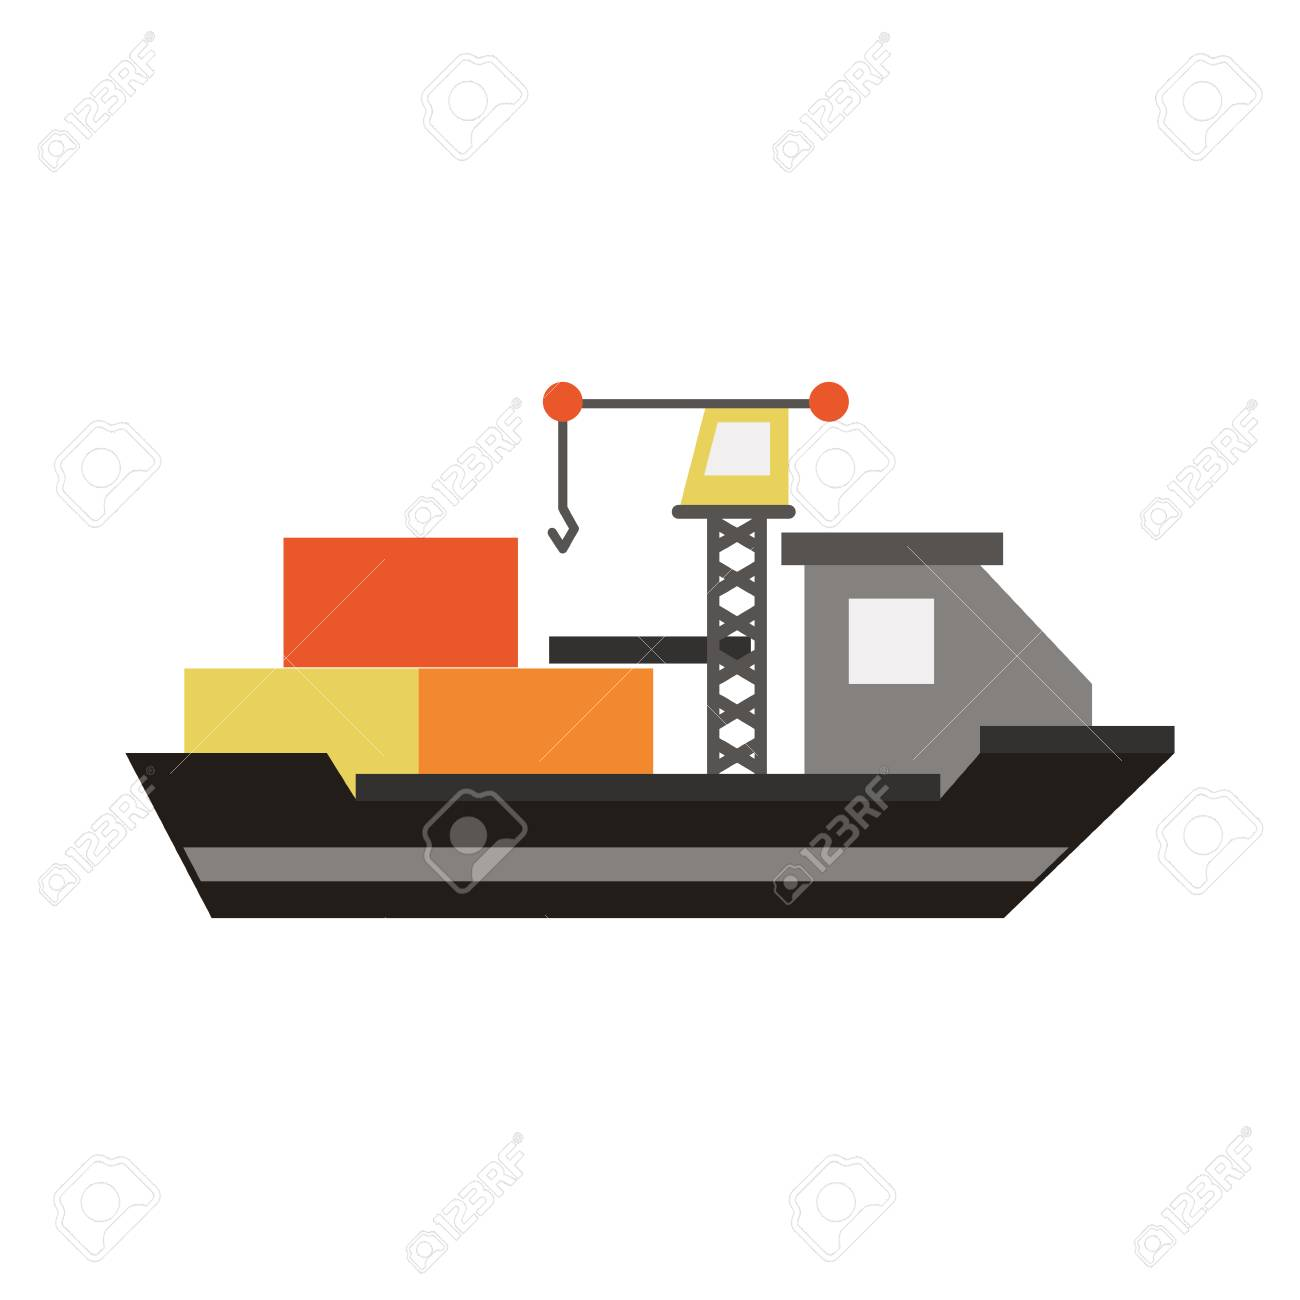 hight resolution of freighter ship symbol icon vector illustration graphic design stock vector 94538372